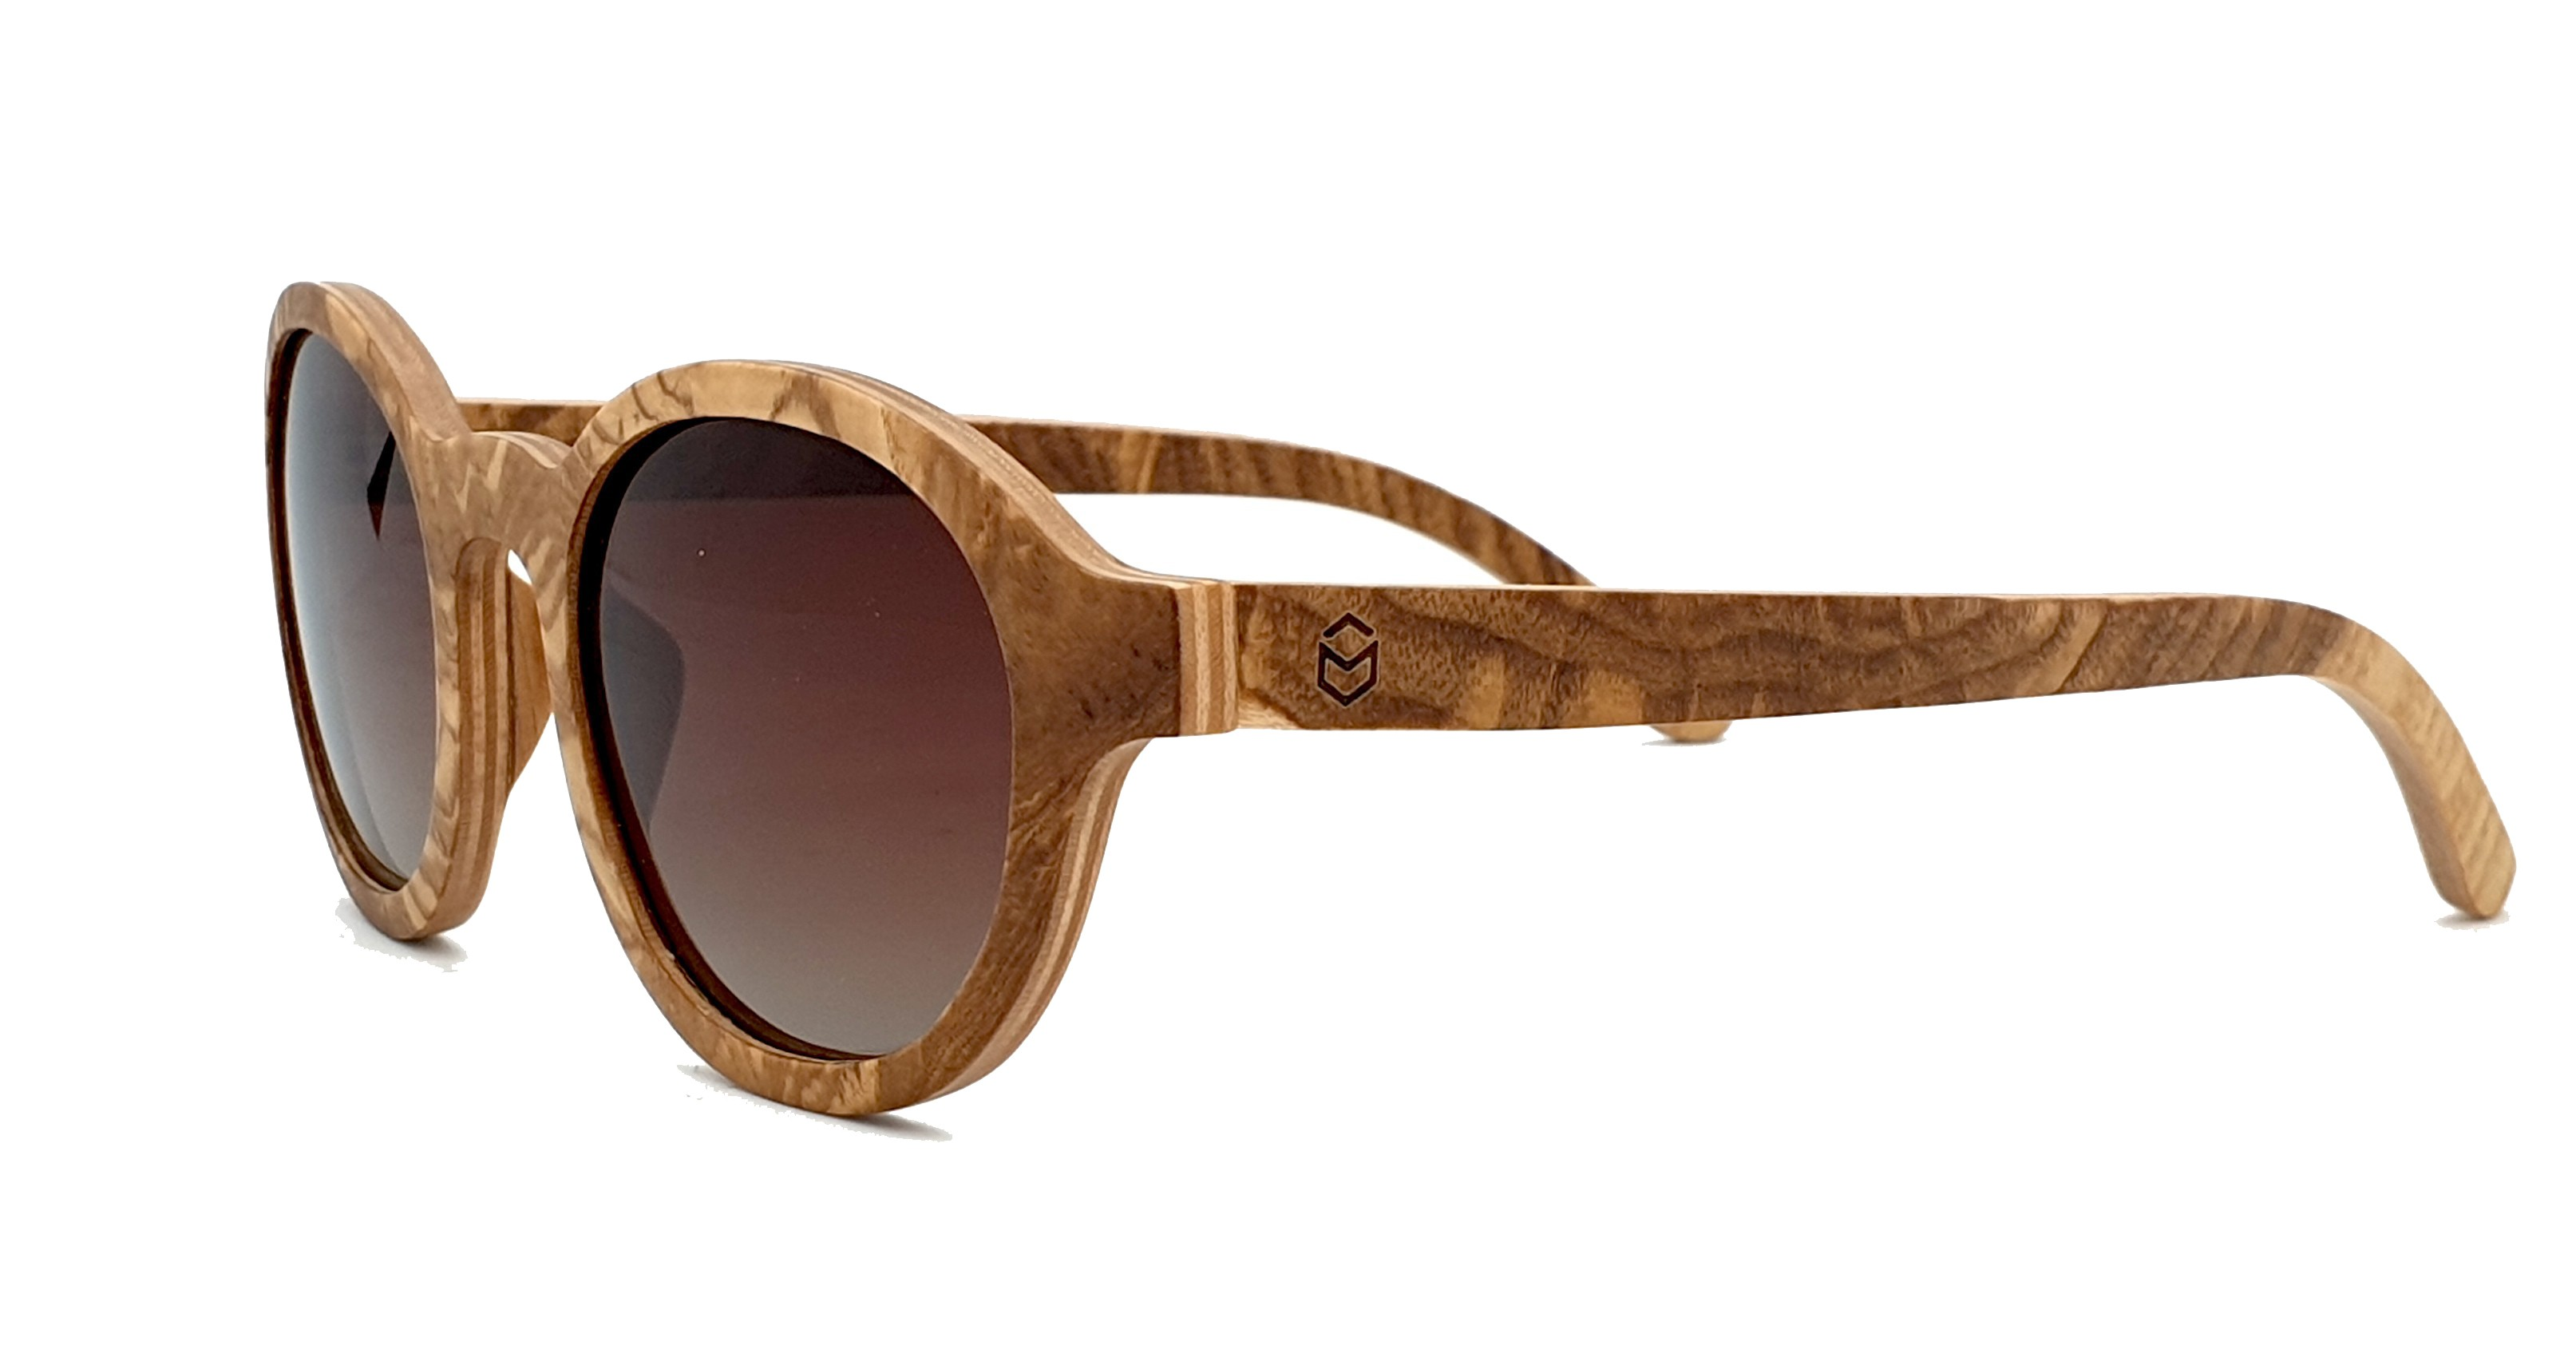 Wooden sunglasses Mabaonline Model TOKIO